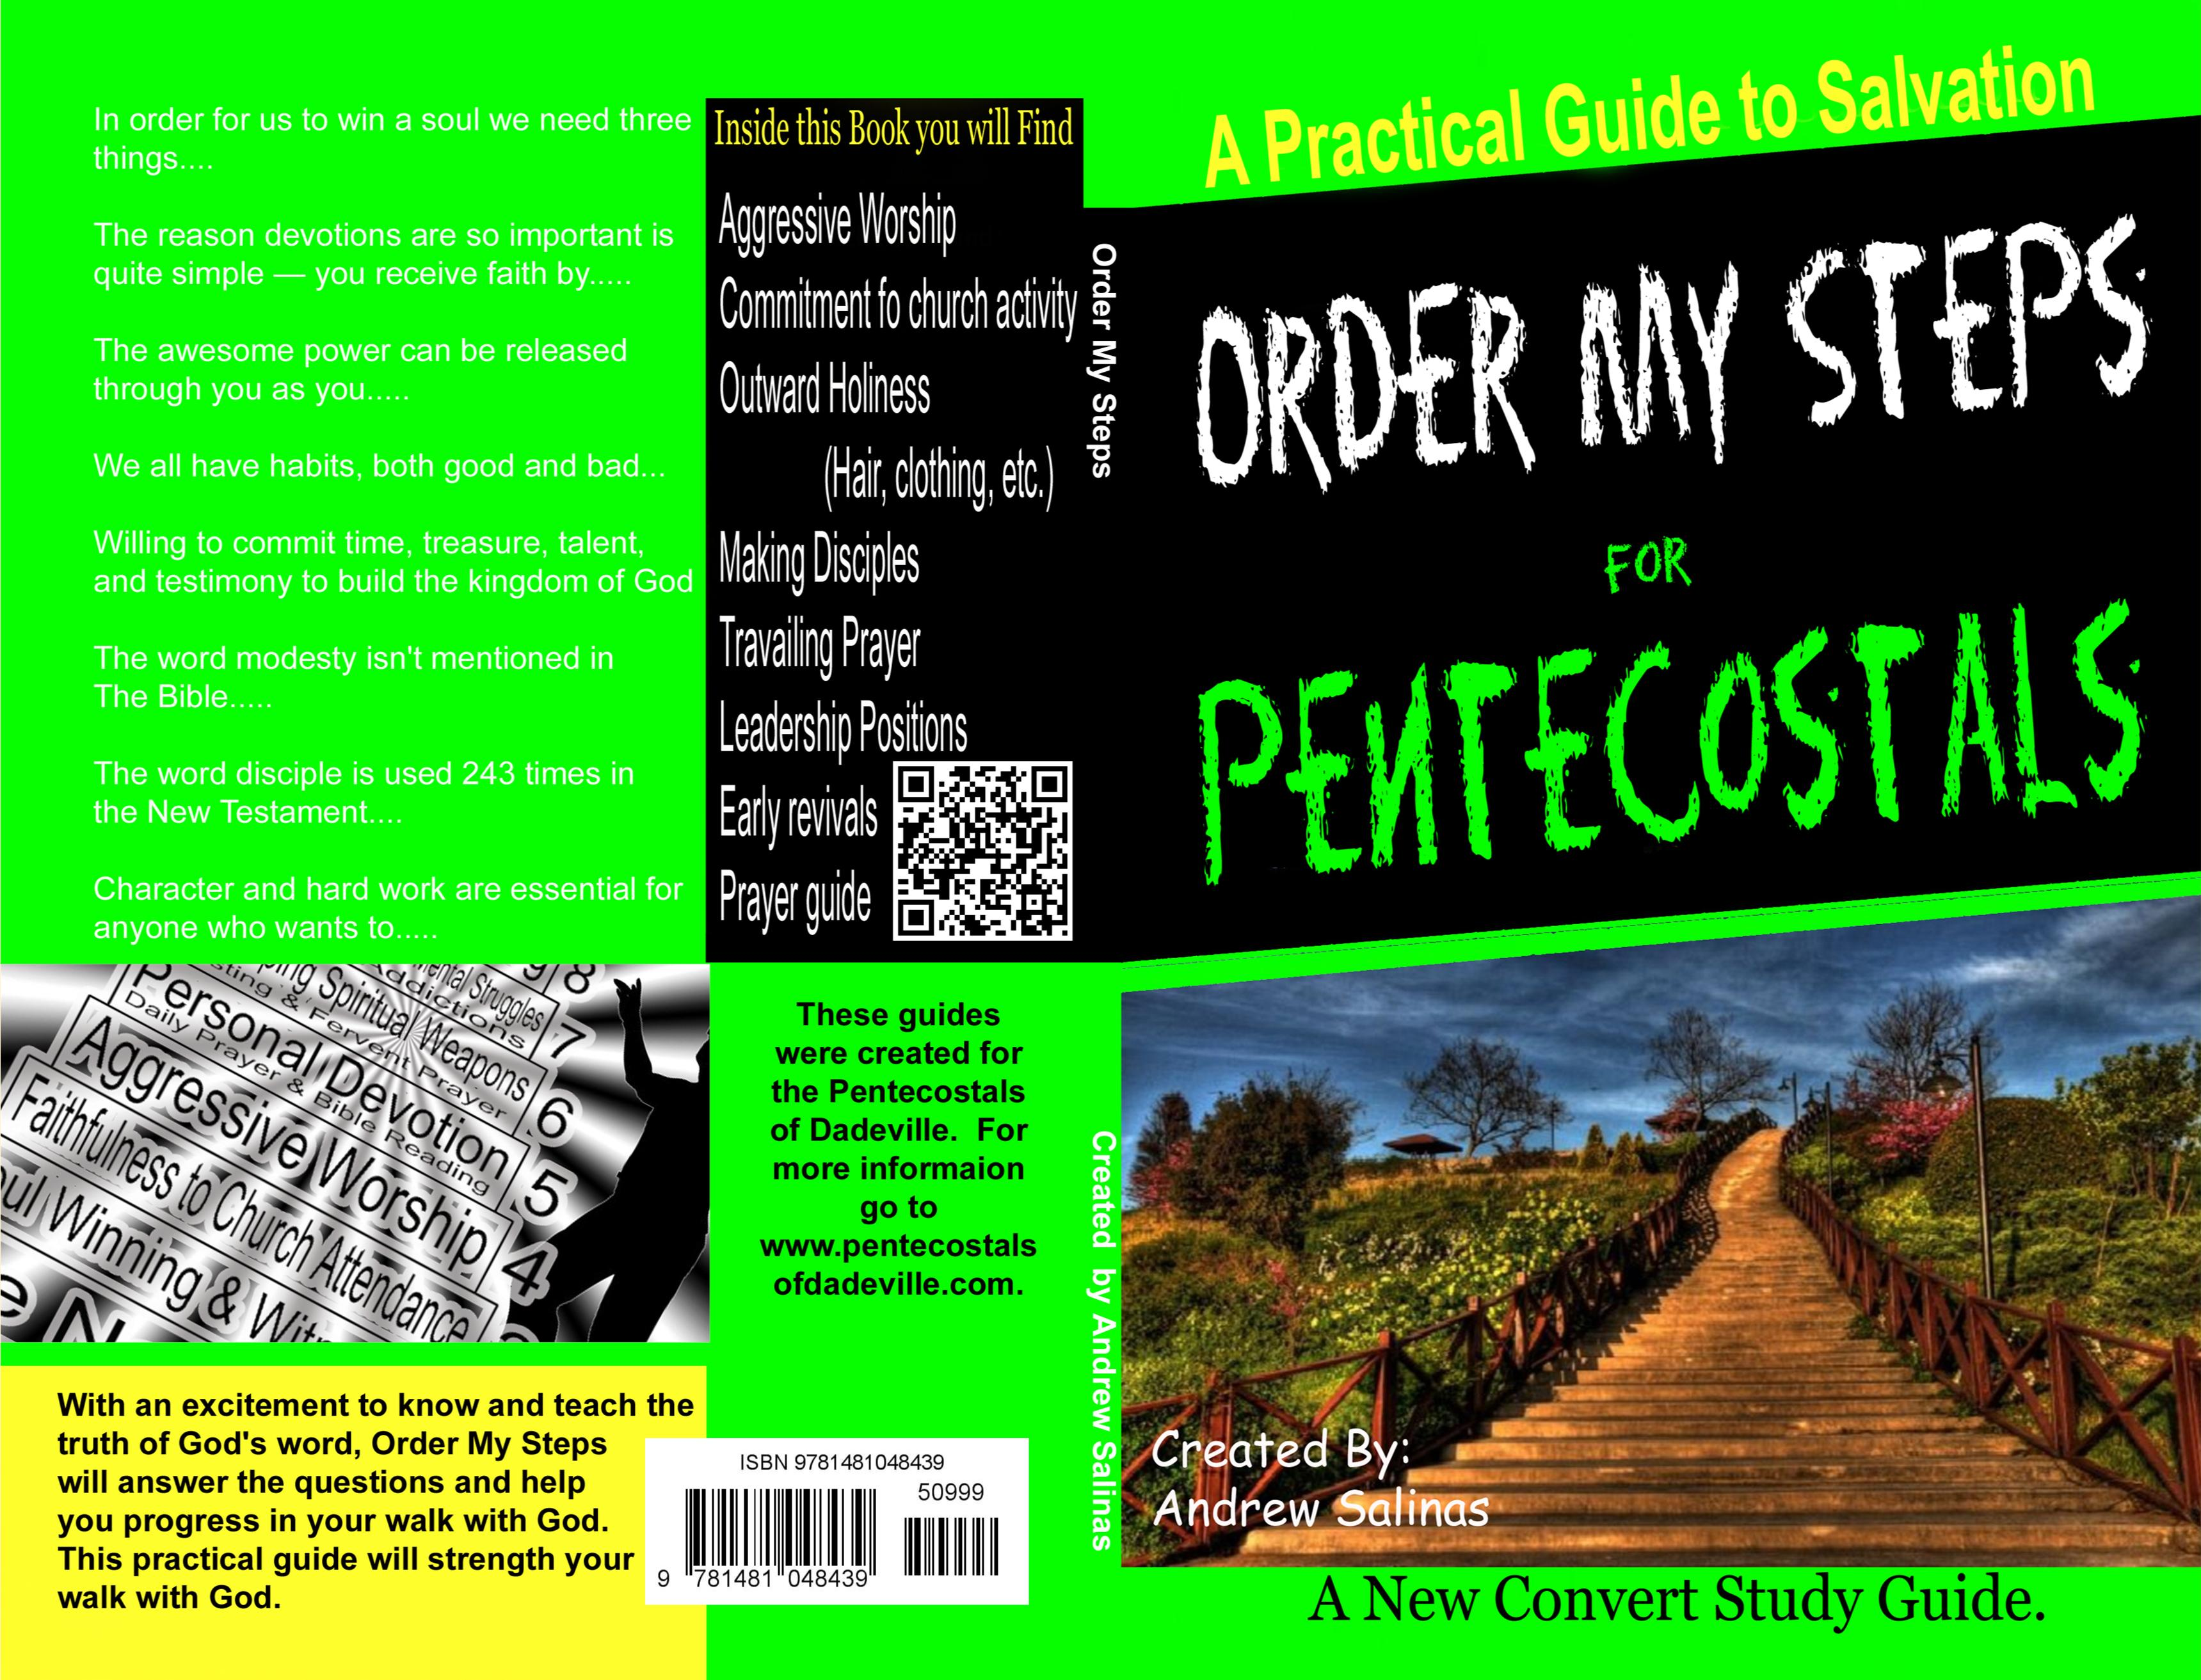 Order My Steps cover image